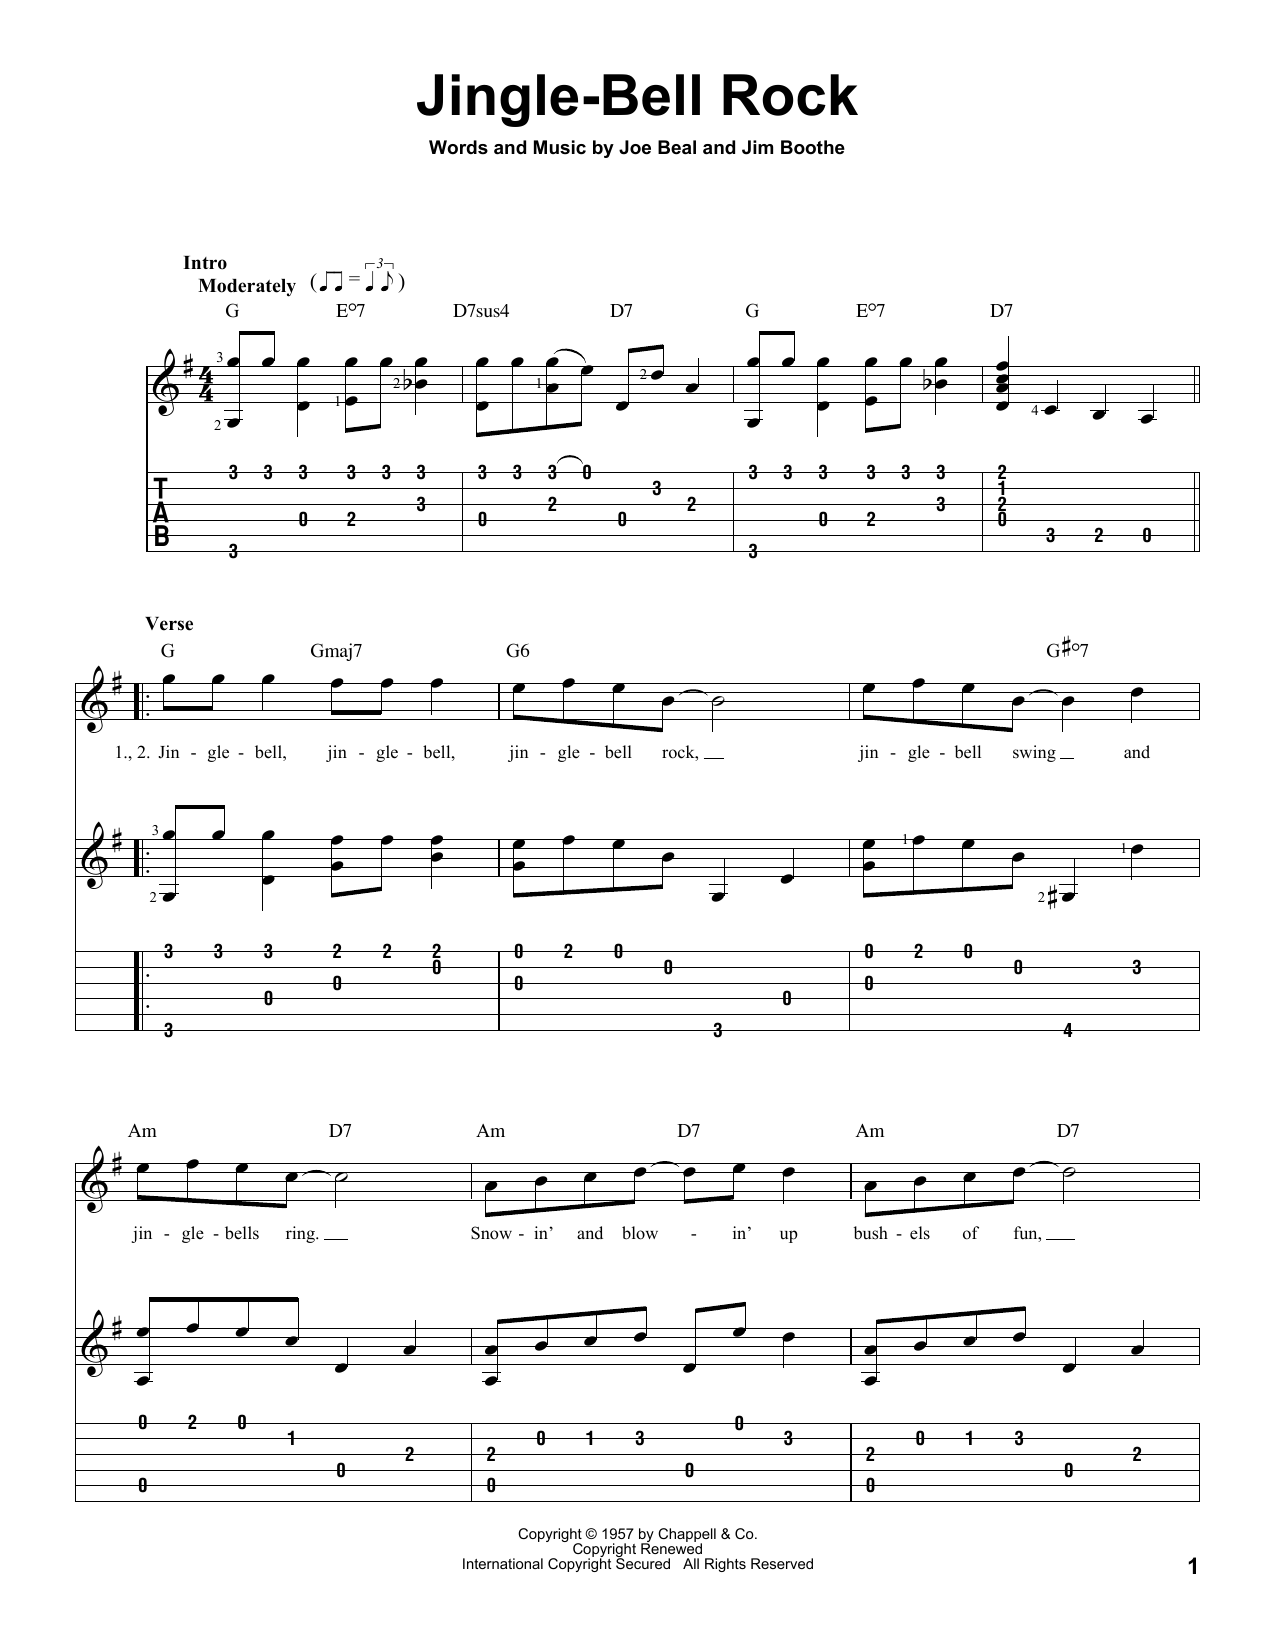 Jingle-Bell Rock : Sheet Music Direct